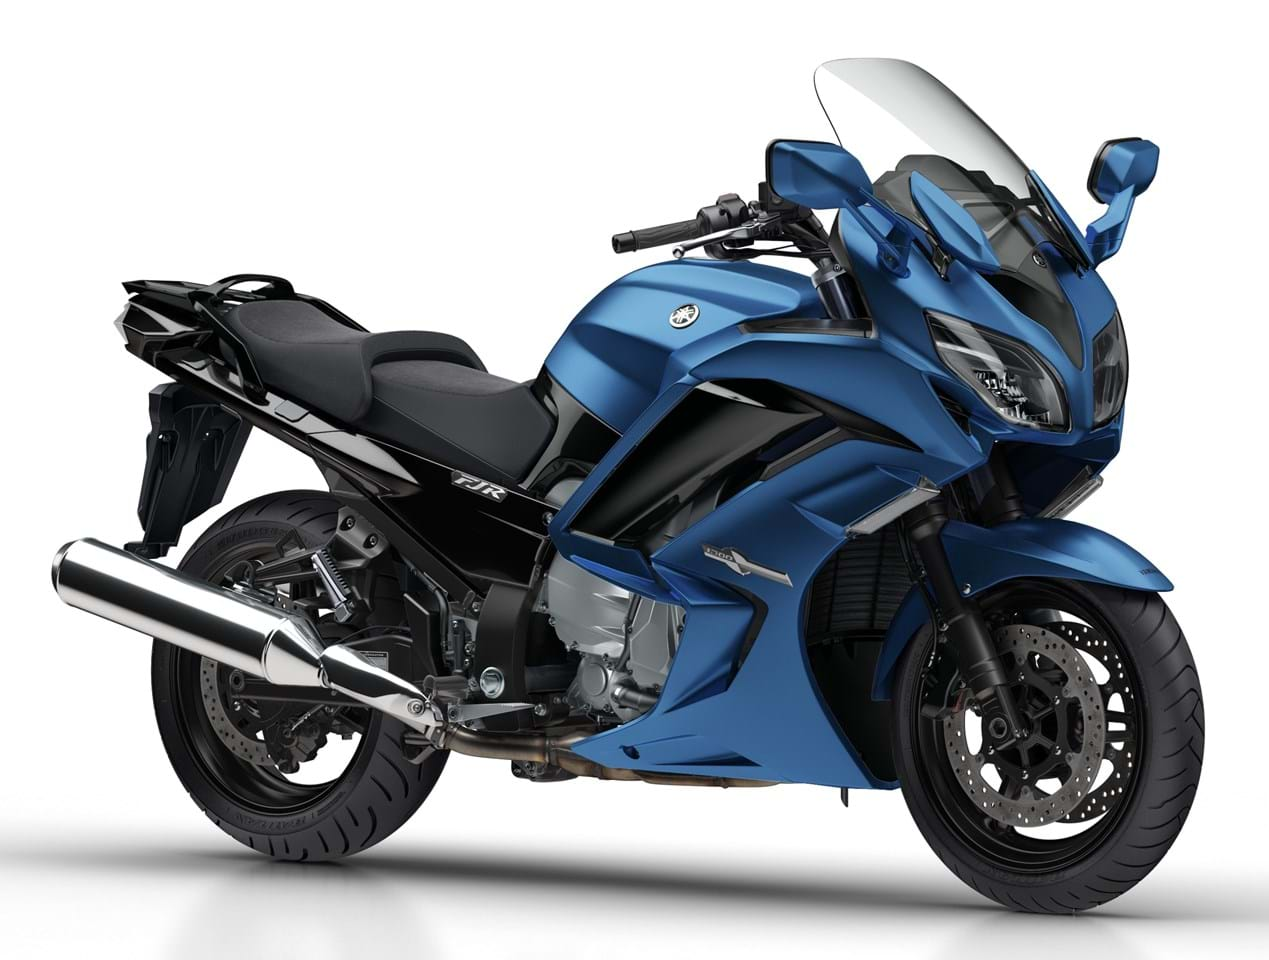 yamaha fjr1300 2013 on for sale price guide the bike market. Black Bedroom Furniture Sets. Home Design Ideas